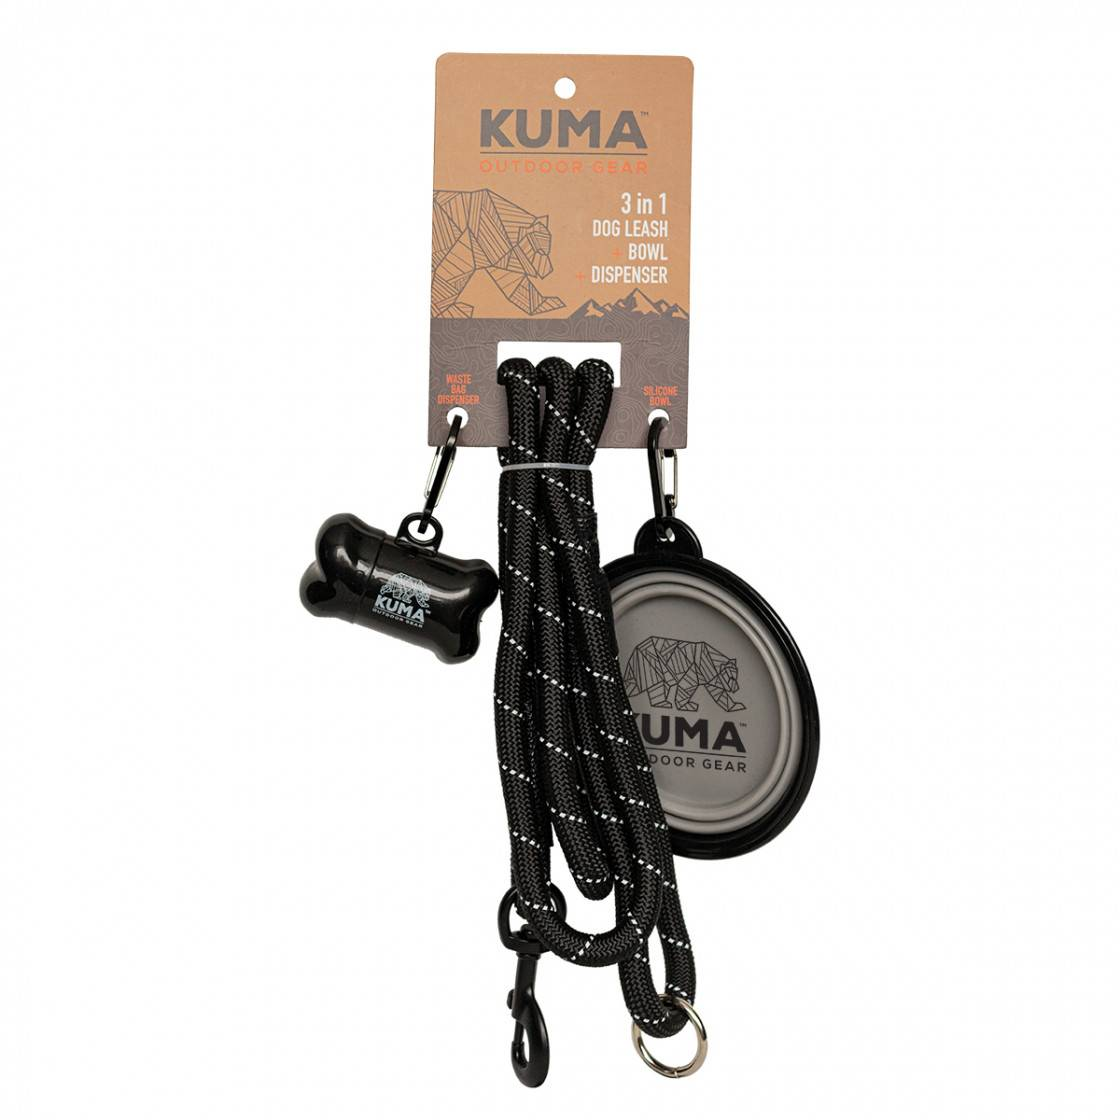 3 in 1 Dog Leash - Black/Grey